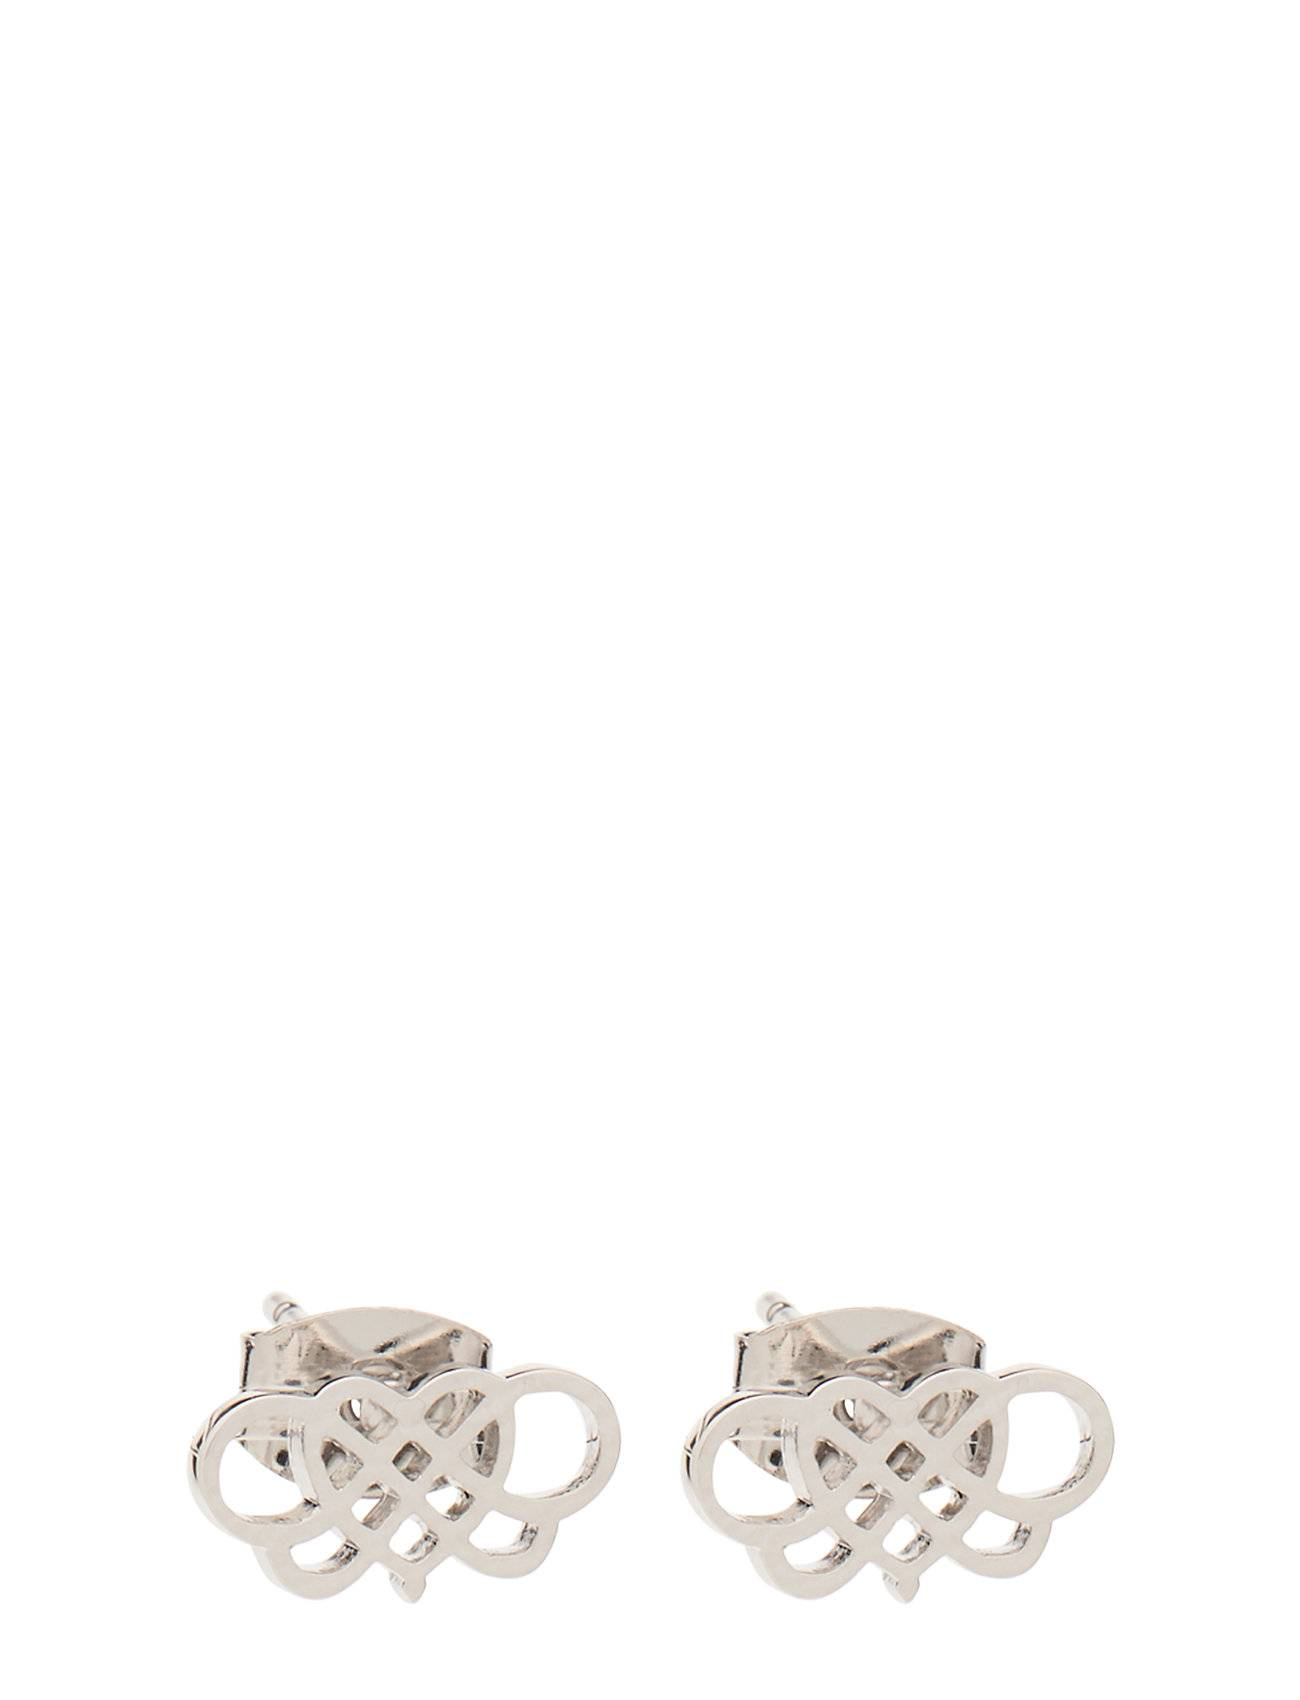 LILY AND ROSE Lily Signature Earrings - Silver Accessories Jewellery Earrings Studs Hopea LILY AND ROSE